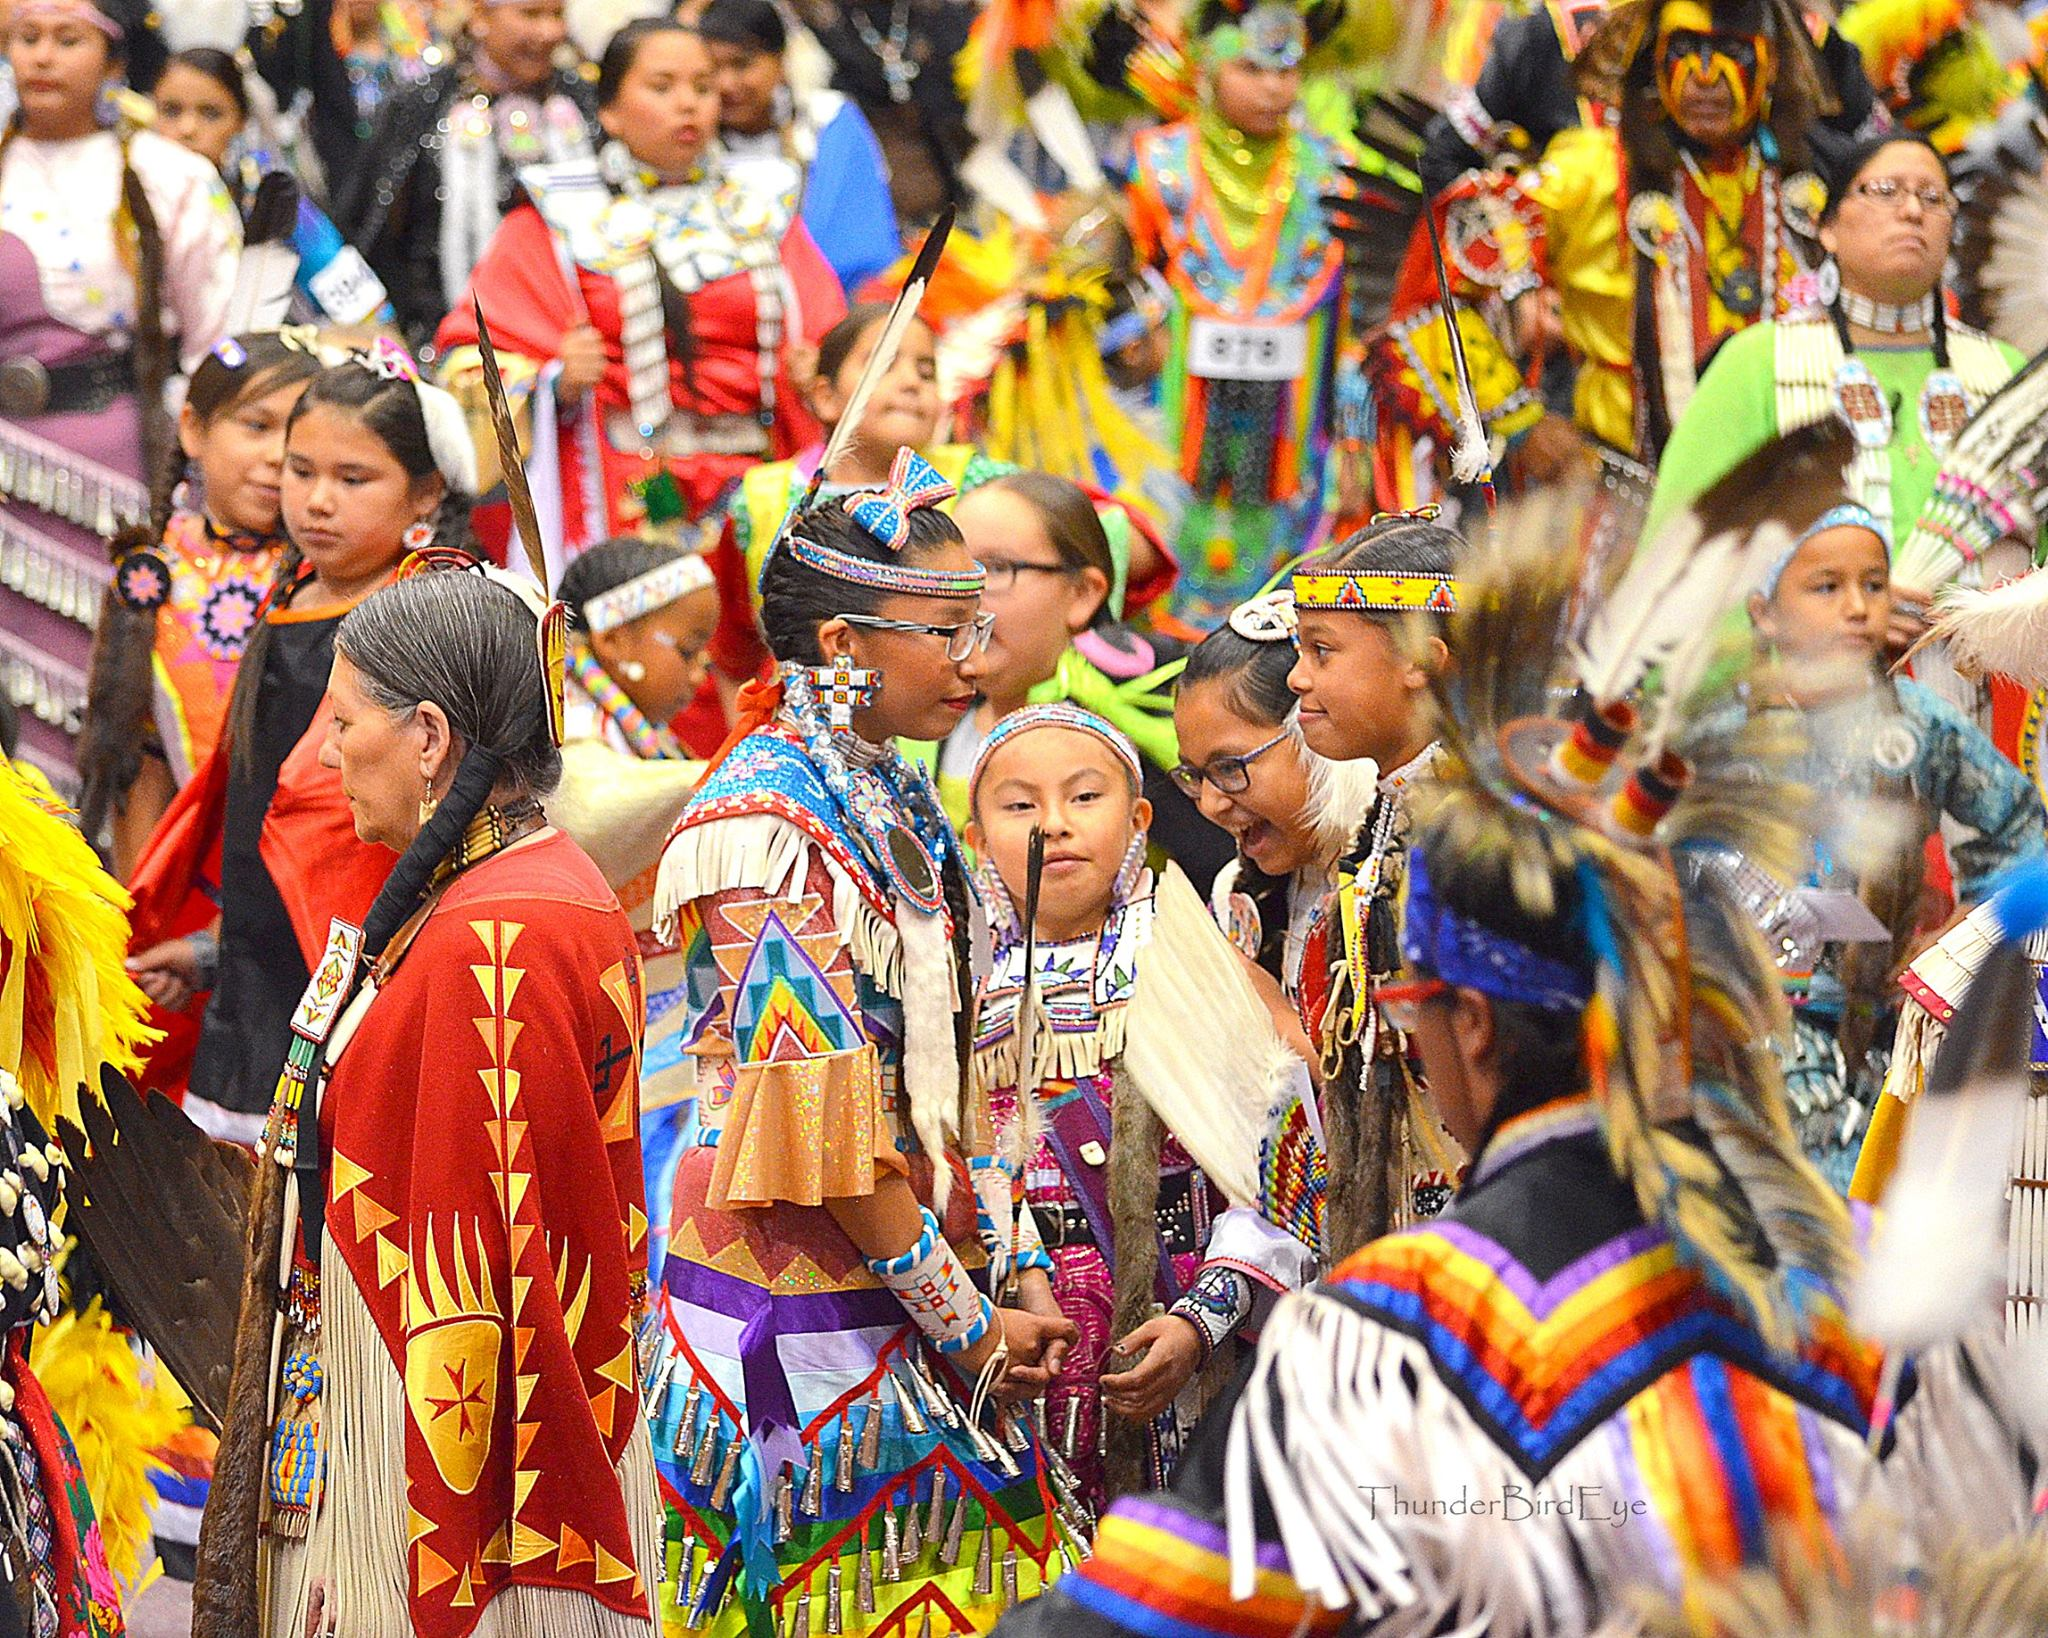 Lakota Country Times: Powwow and Indian relay unite for big event in South Dakota